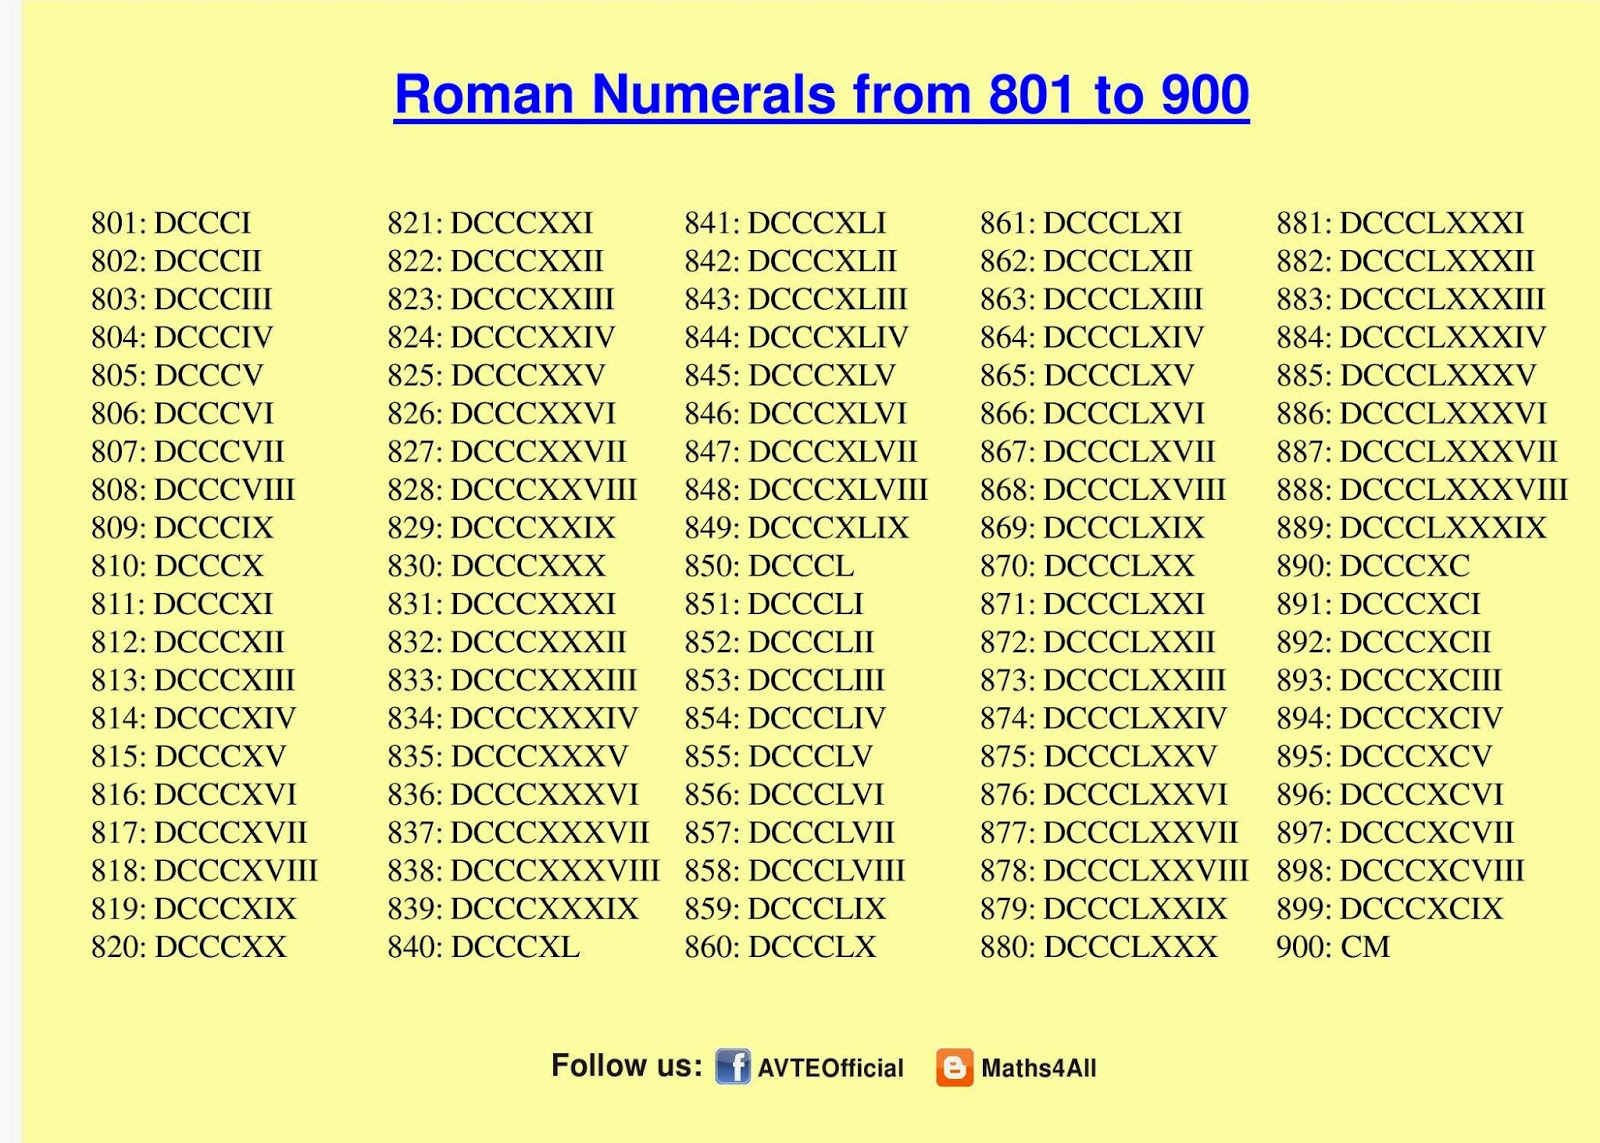 Maths4all Roman Numerals 801 To 900